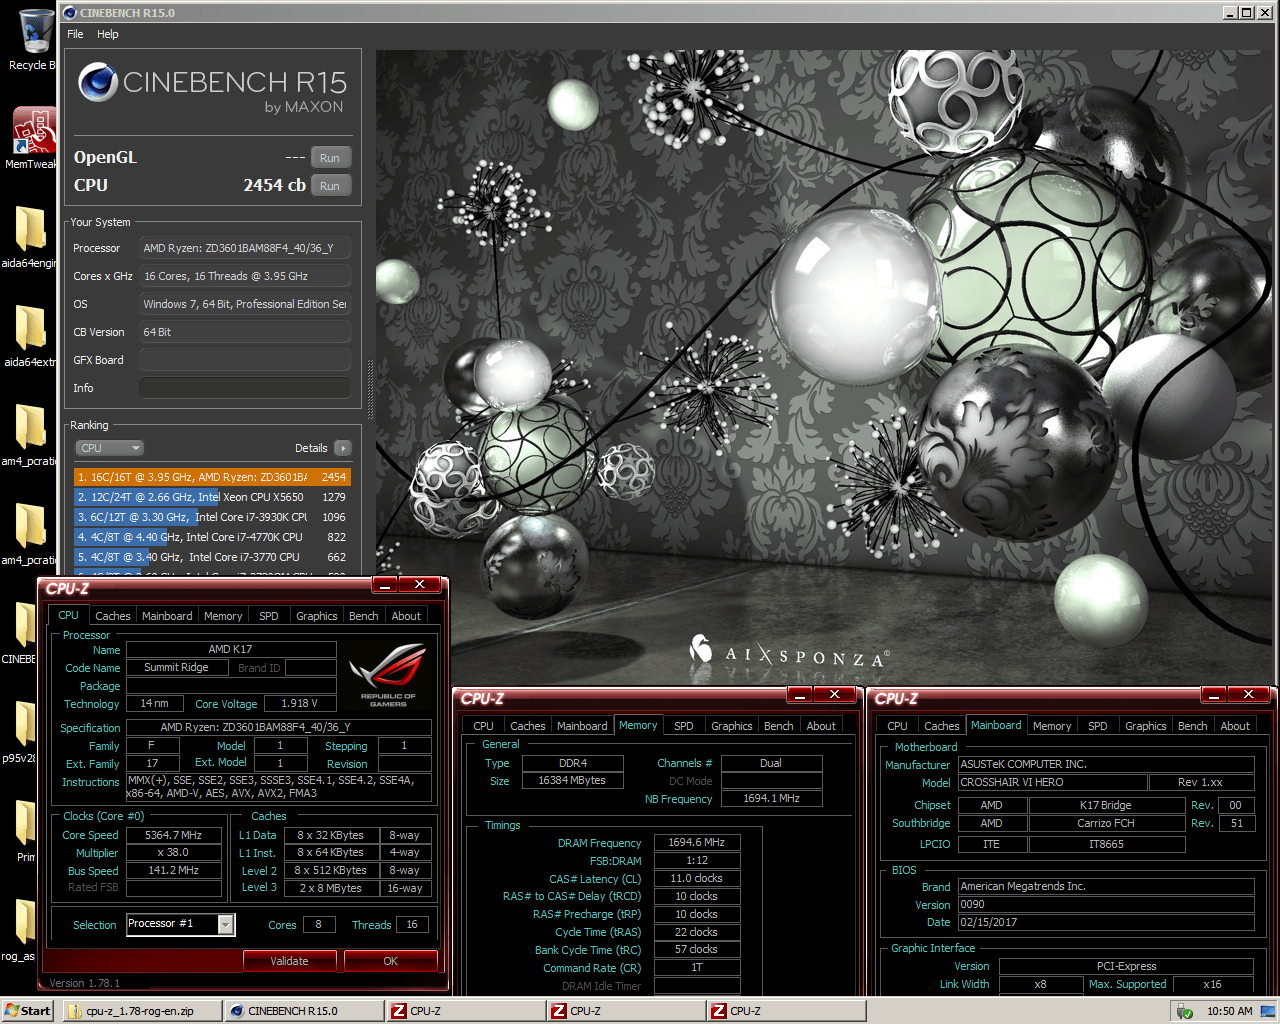 AMD R7 1800x Cinebench